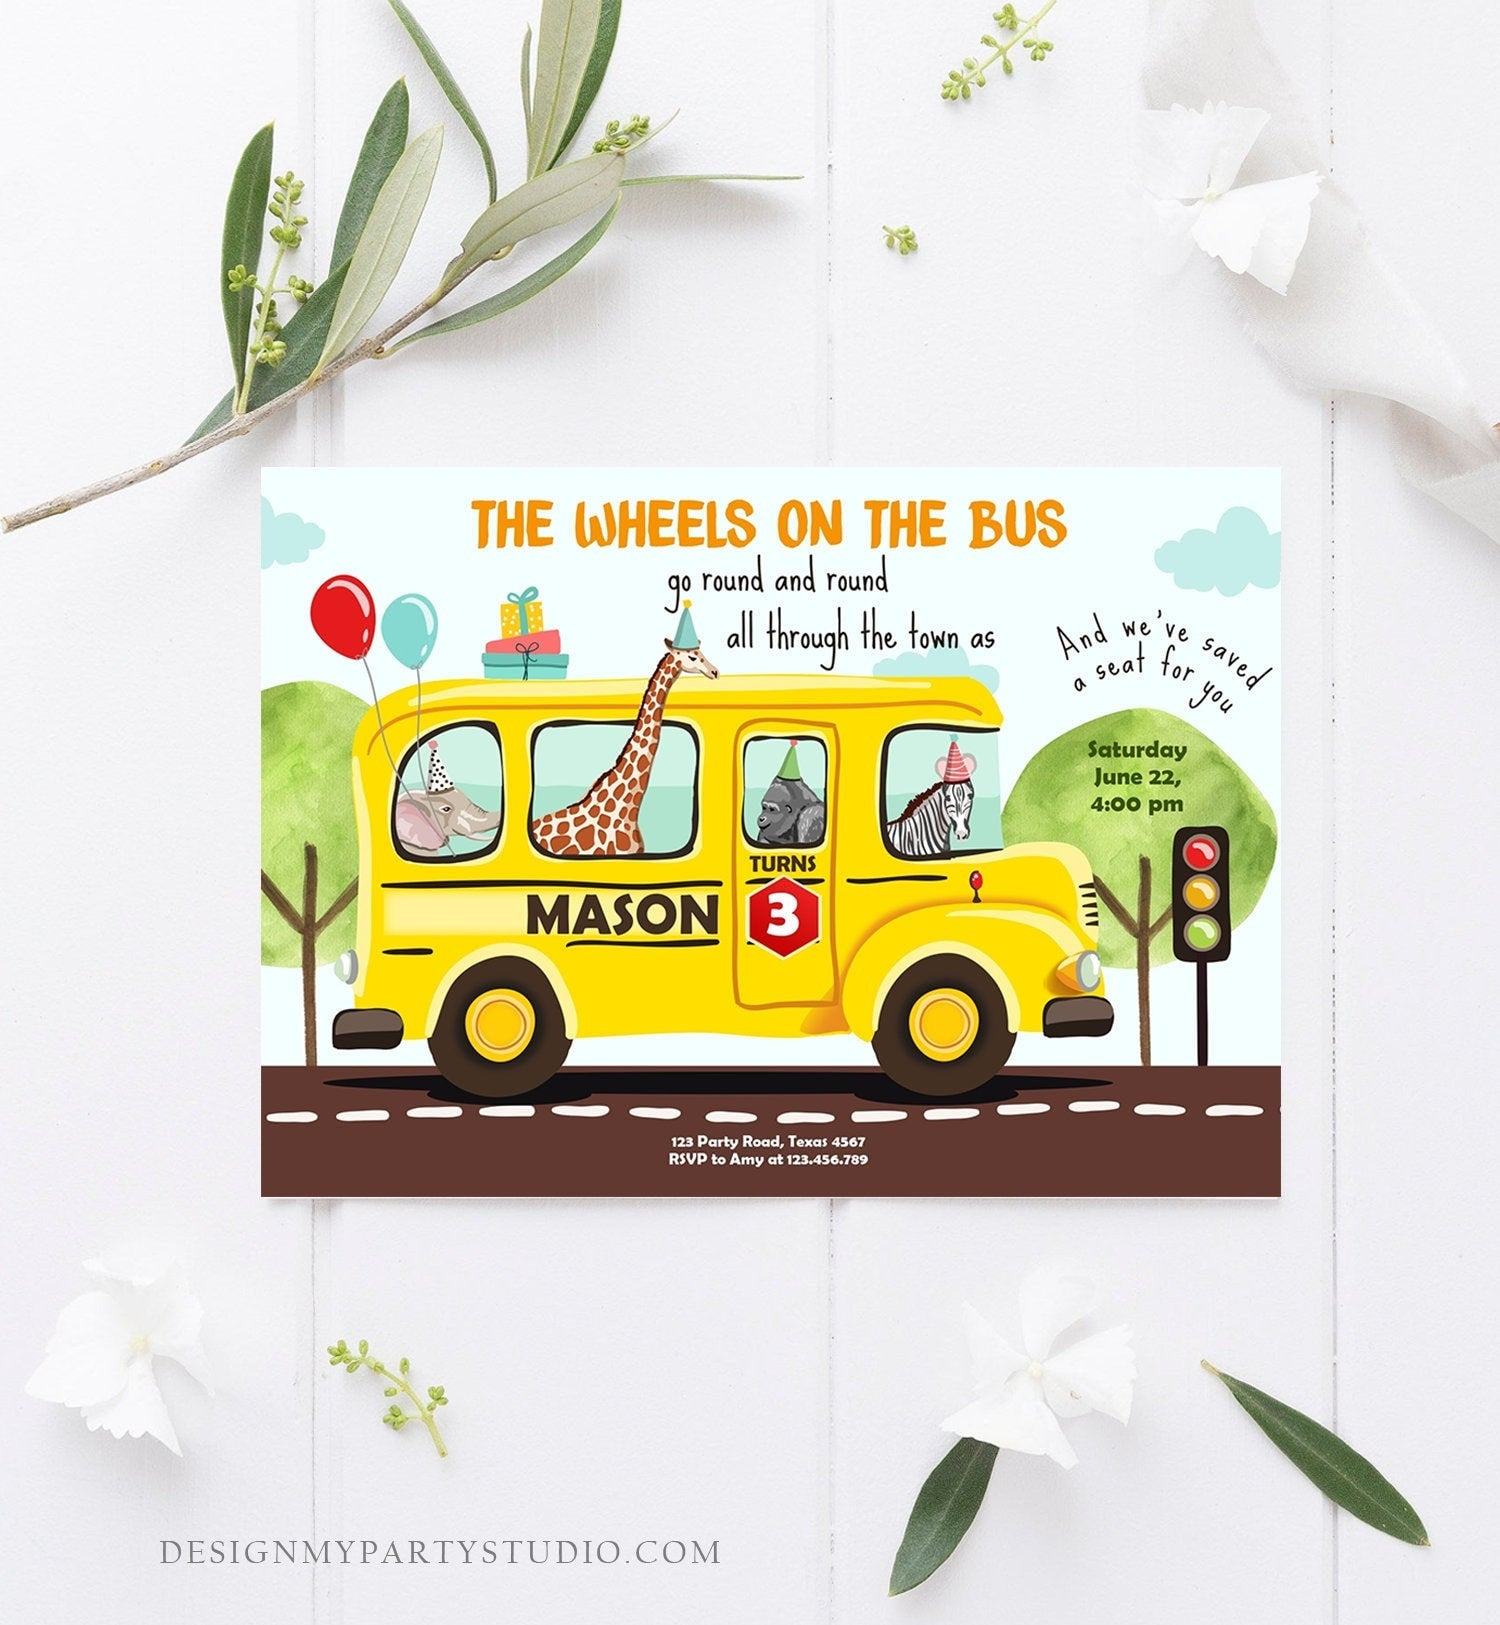 Editable Wheels on the Bus Birthday Invitation Bus Party Invite School Bus Animals Boy Girl Download Printable Template Digital Corjl 0325